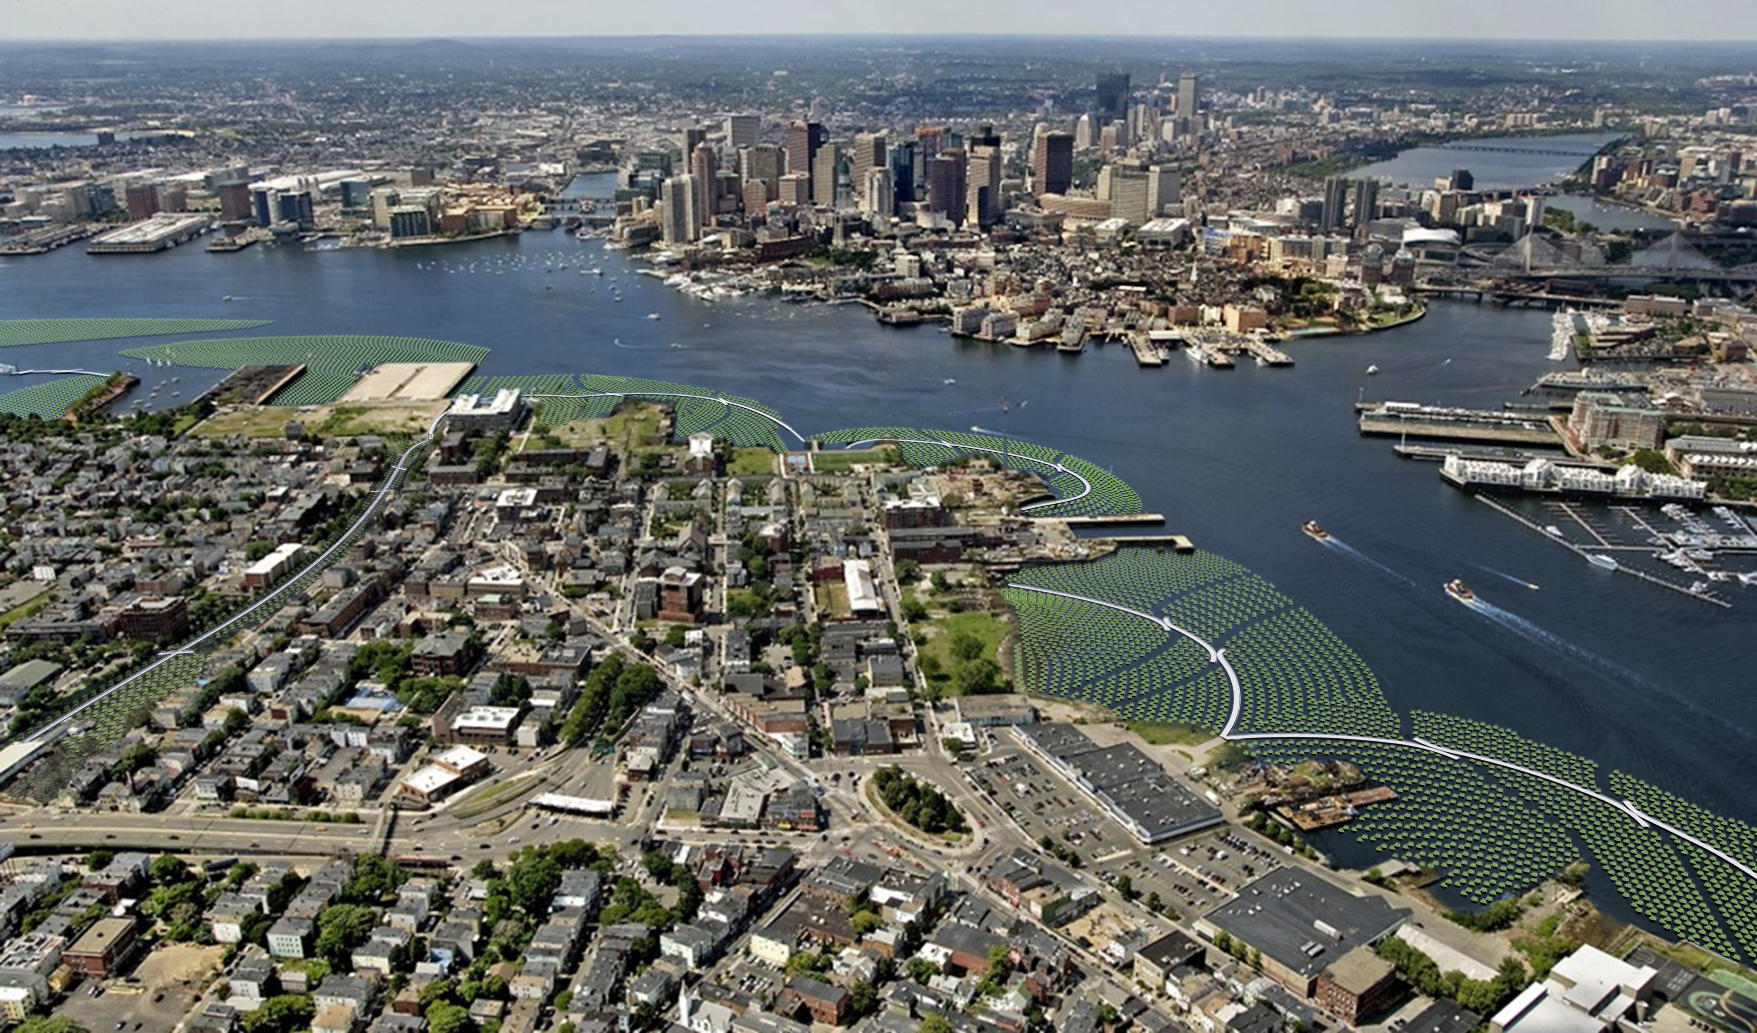 aerial view of city on the coast